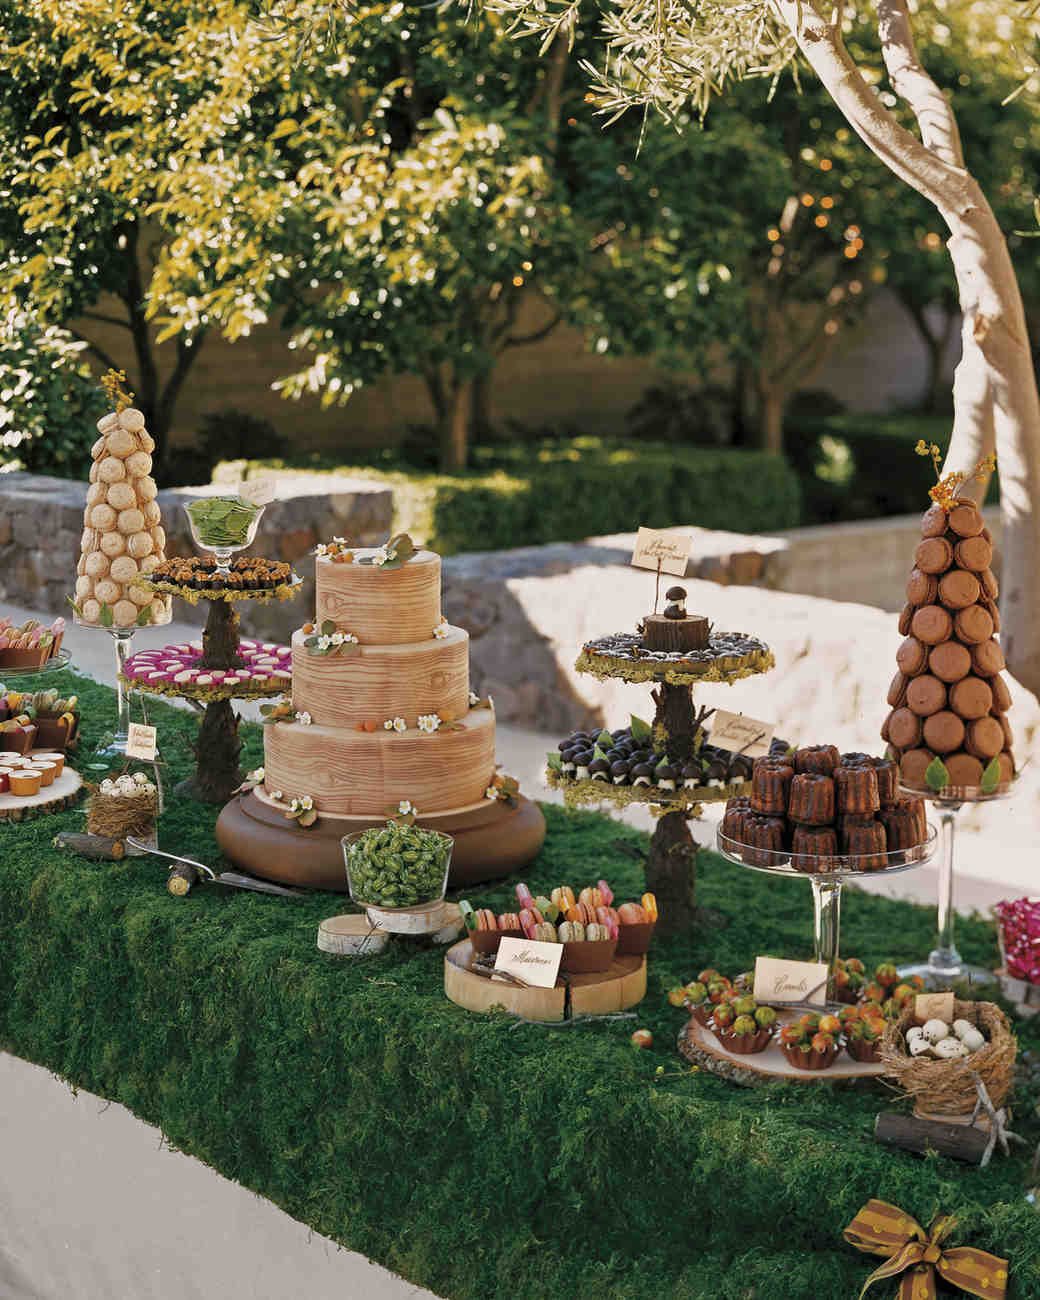 Fall Wedding Dessert Table: 39 Amazing Dessert Tables